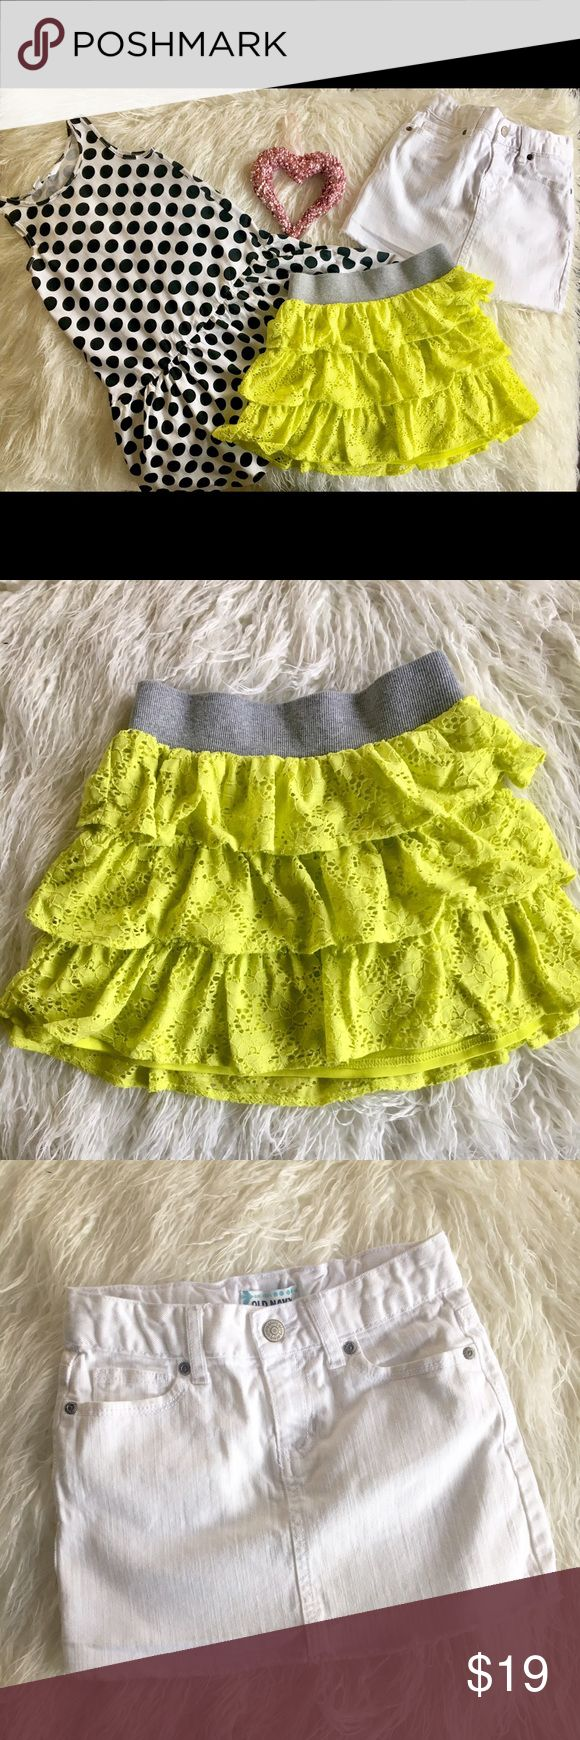 Girls Bundle two skirts and dress Bundle includes one white denim skirt with adjustable waist band, one fabric lime green with a grey elastic waist band & one white dress with black polka dots. In excellent condition size medium 7/8 Bottoms Skirts